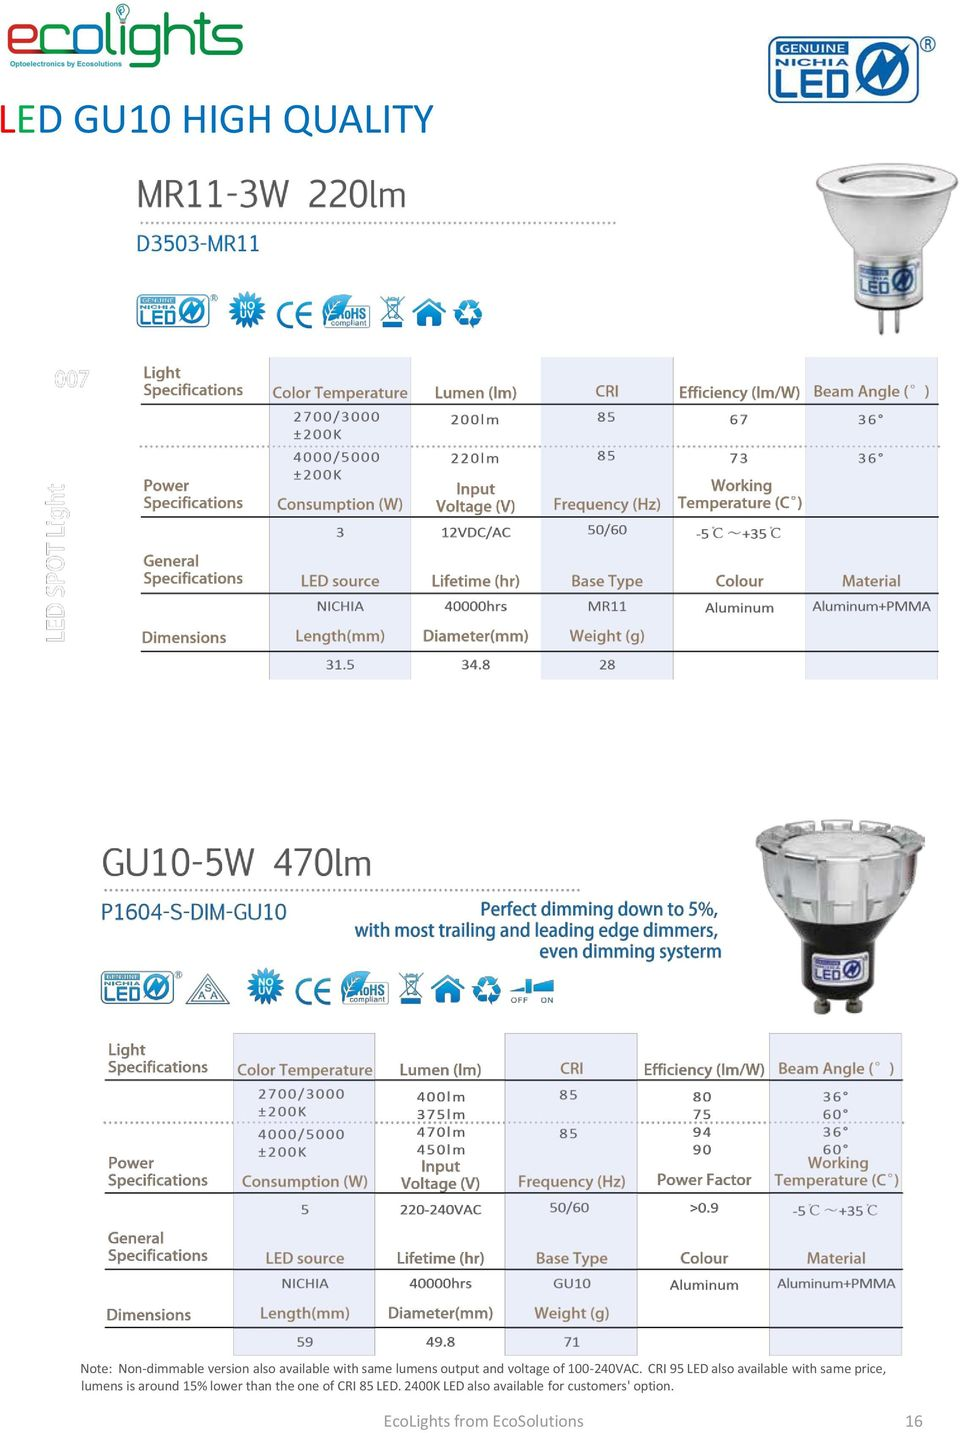 CRI 95 LED also available with same price, lumens is around 15% lower